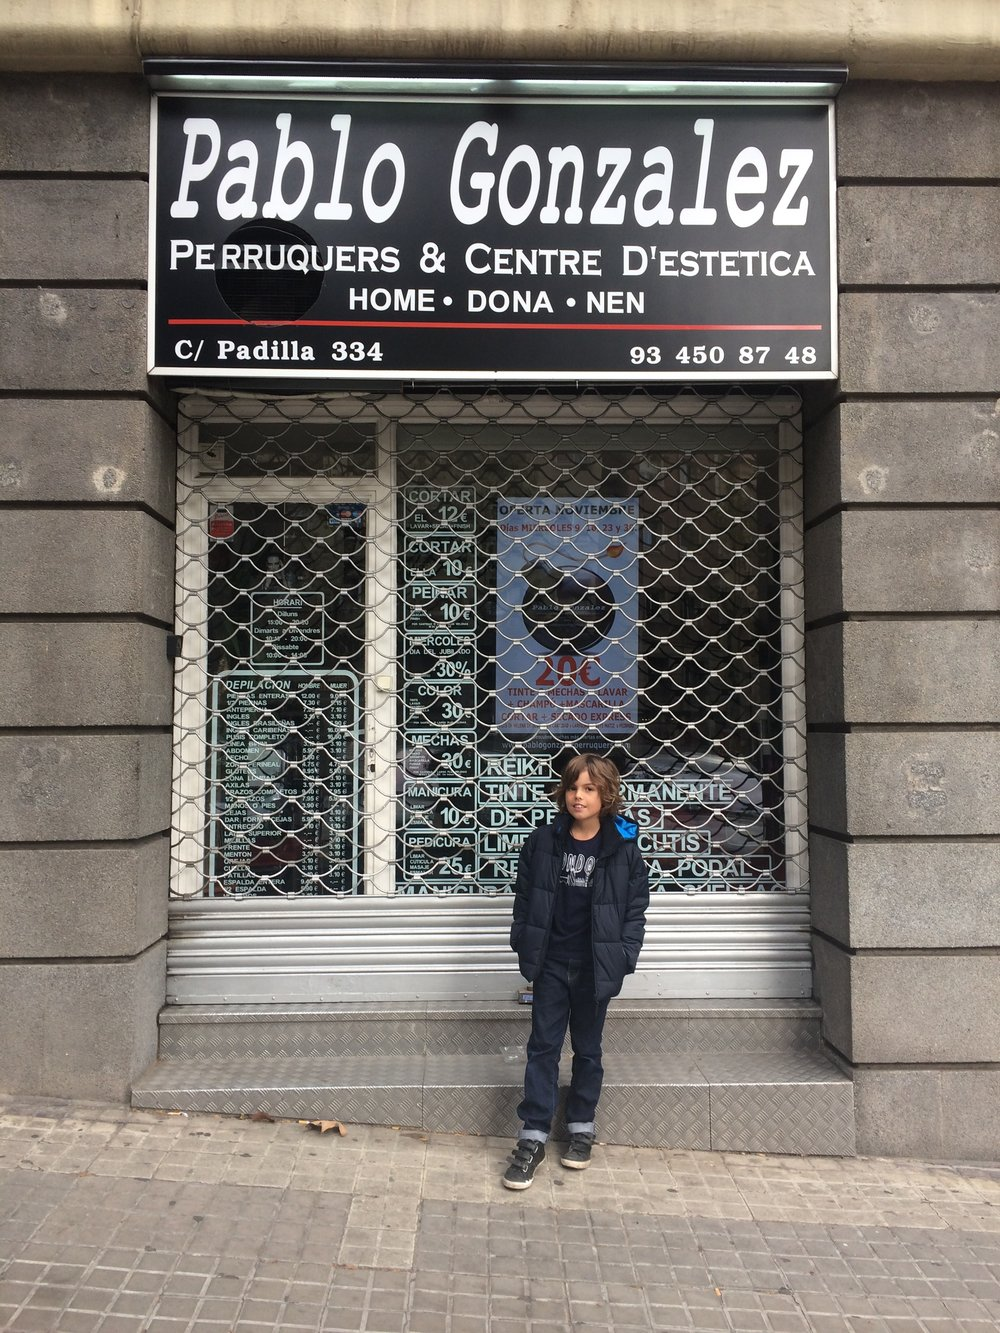 when we looked through Barcelona we found this shop what had this sign saying Pablo because it is a Spanish name.